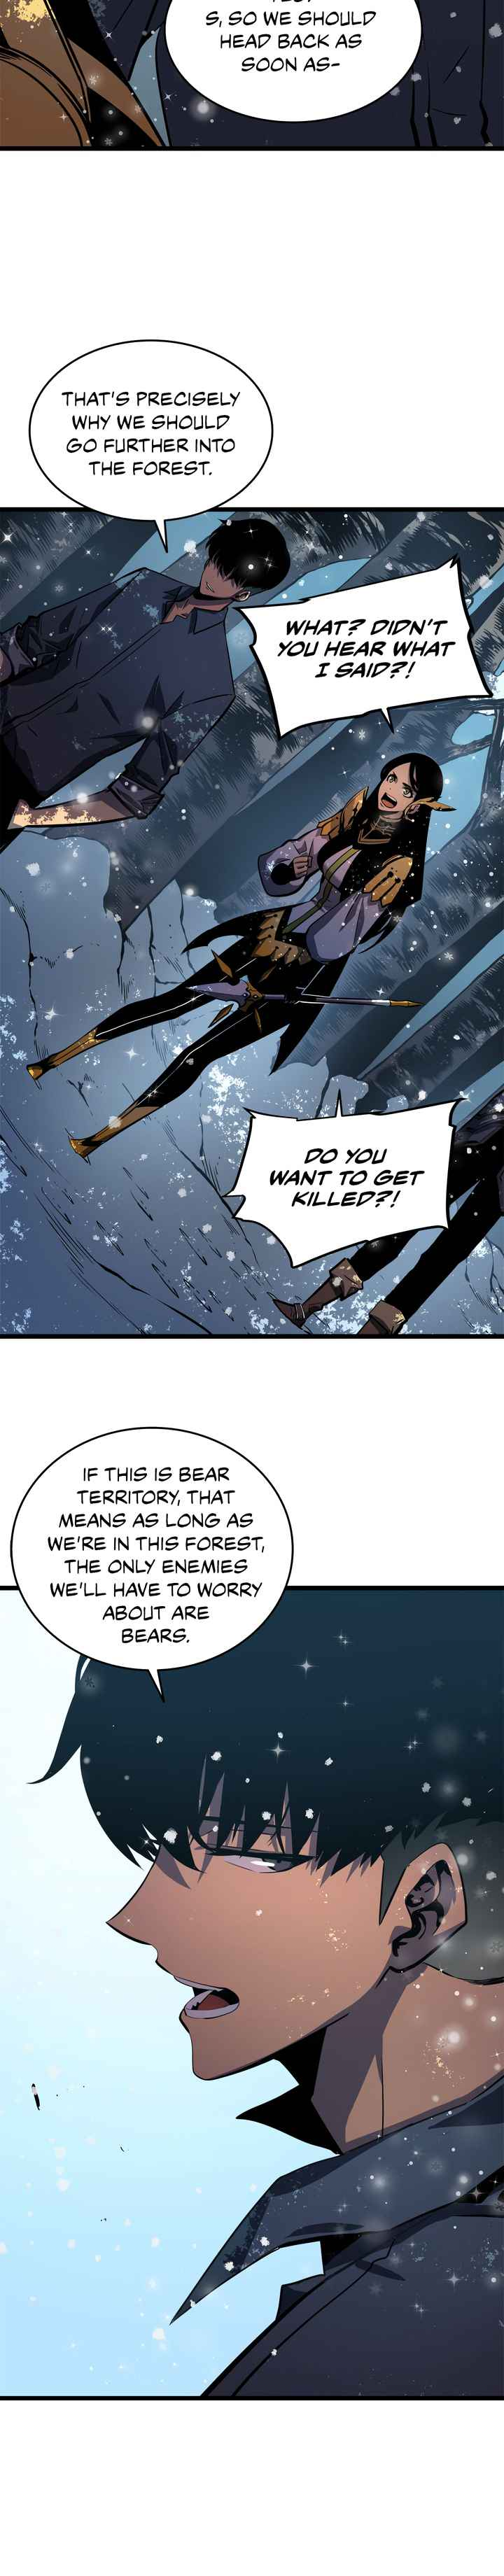 Solo Leveling Chapter 50 Page 9